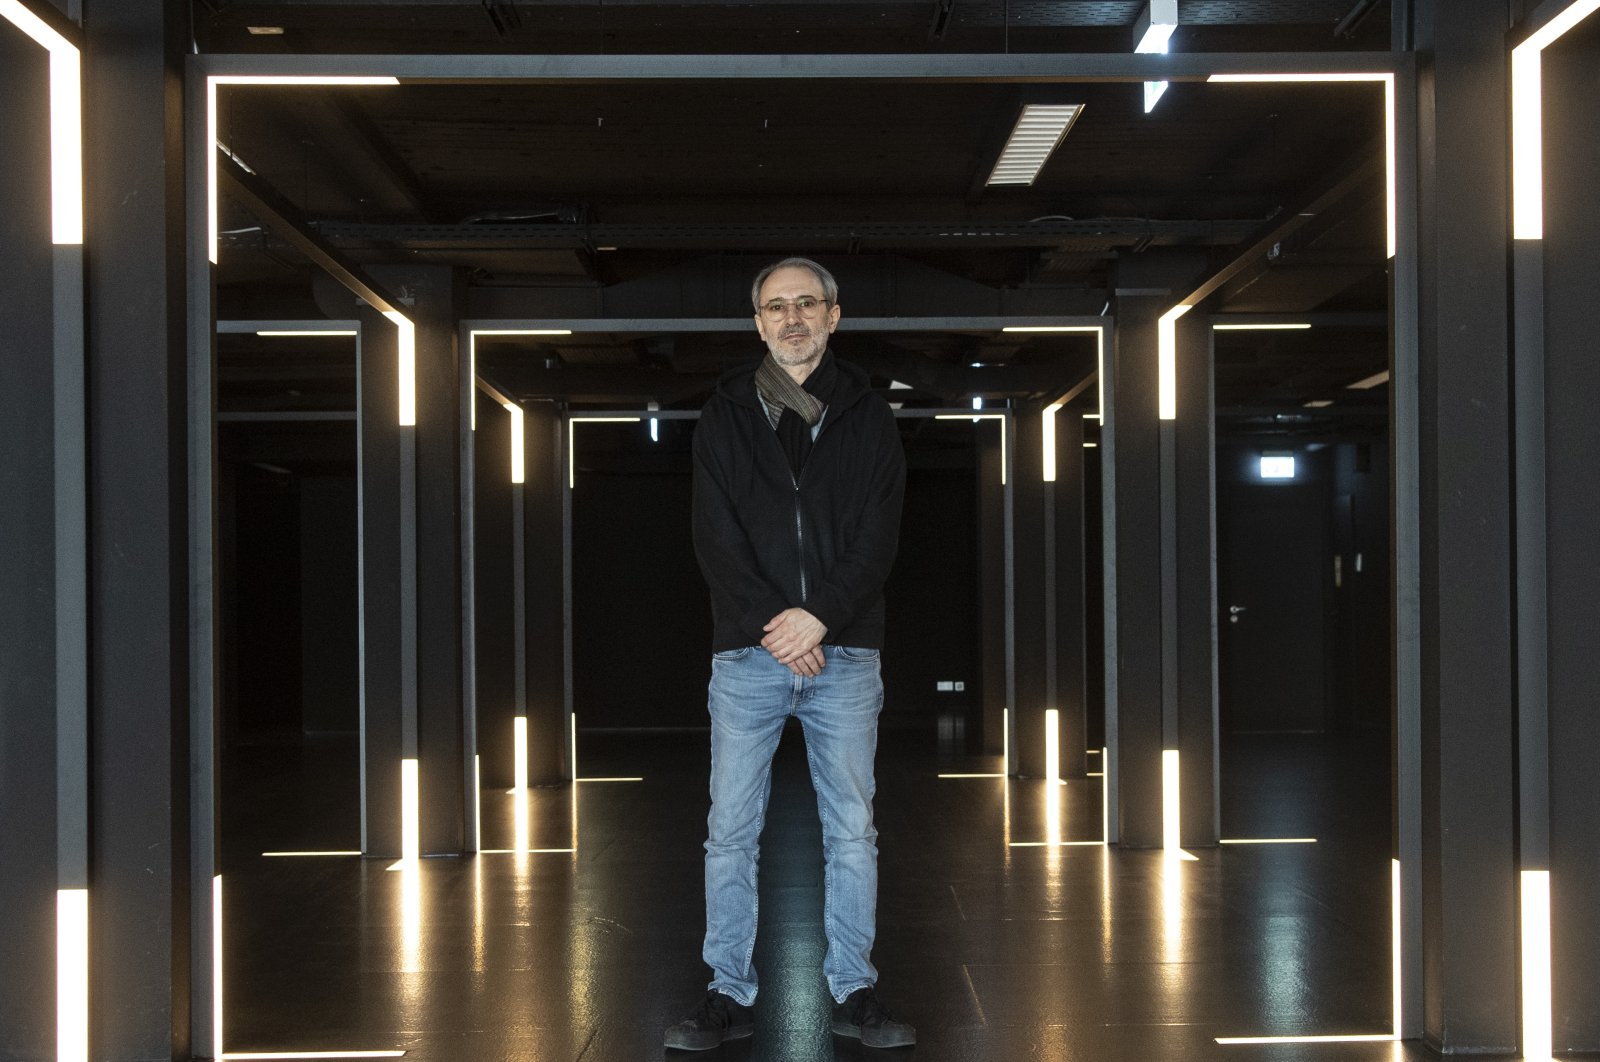 Alex Azary, chairperson of the association Museum of Modern Electronic Music (MOMEN), at a press event in the future premises of Frankfurt am Main's electronic music museum. (DPA)